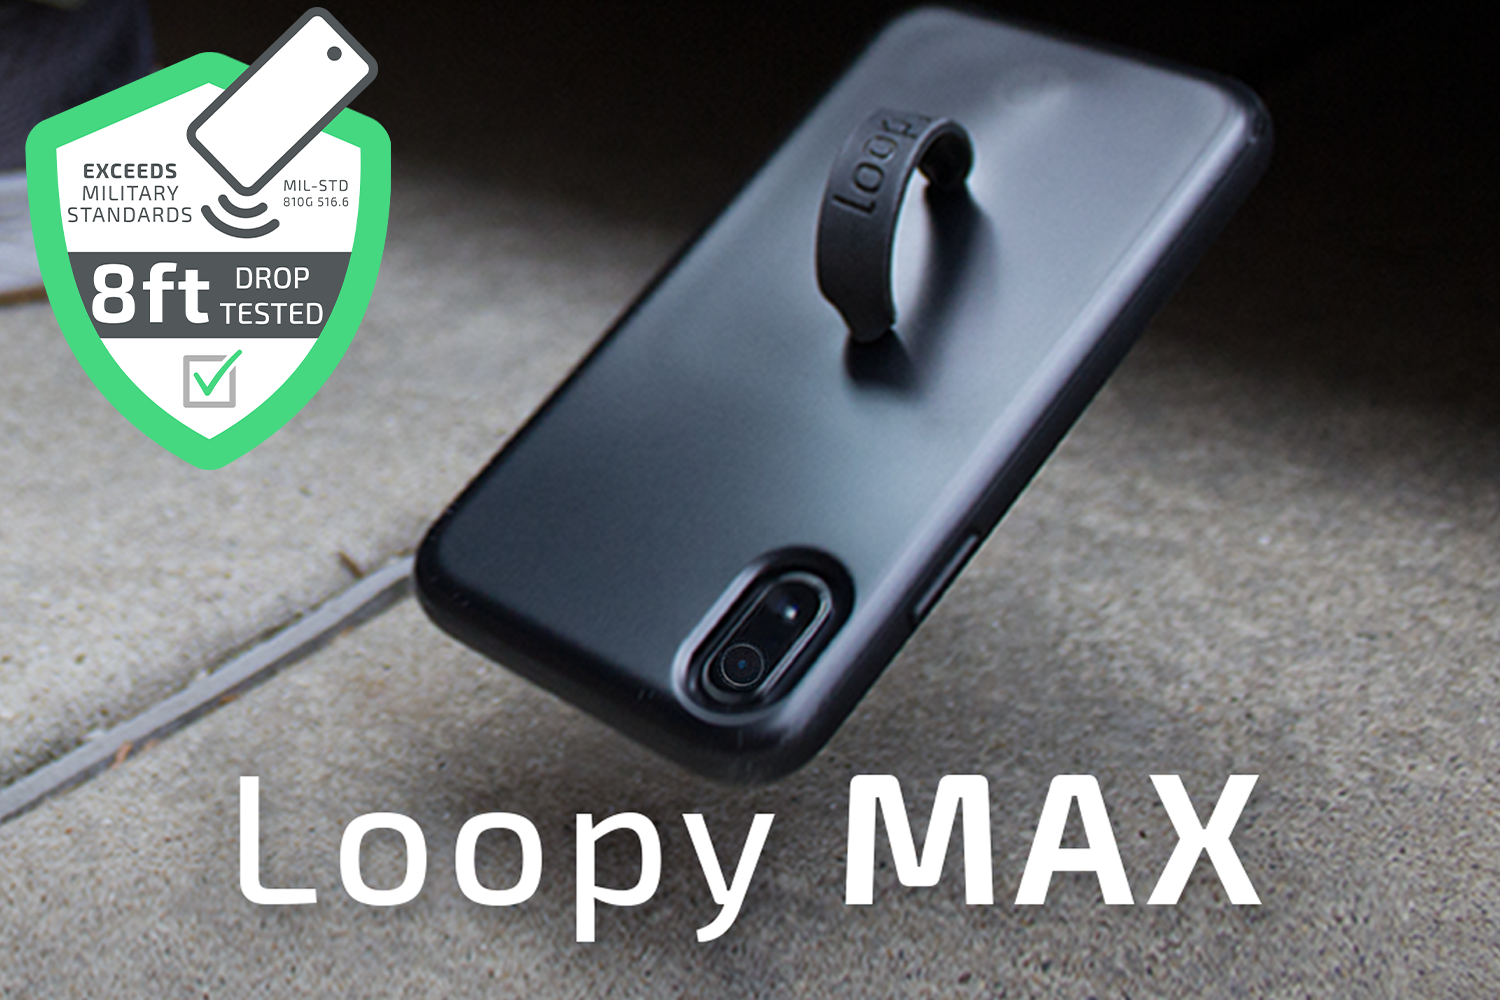 Loopy MAX for the iPhone Xr